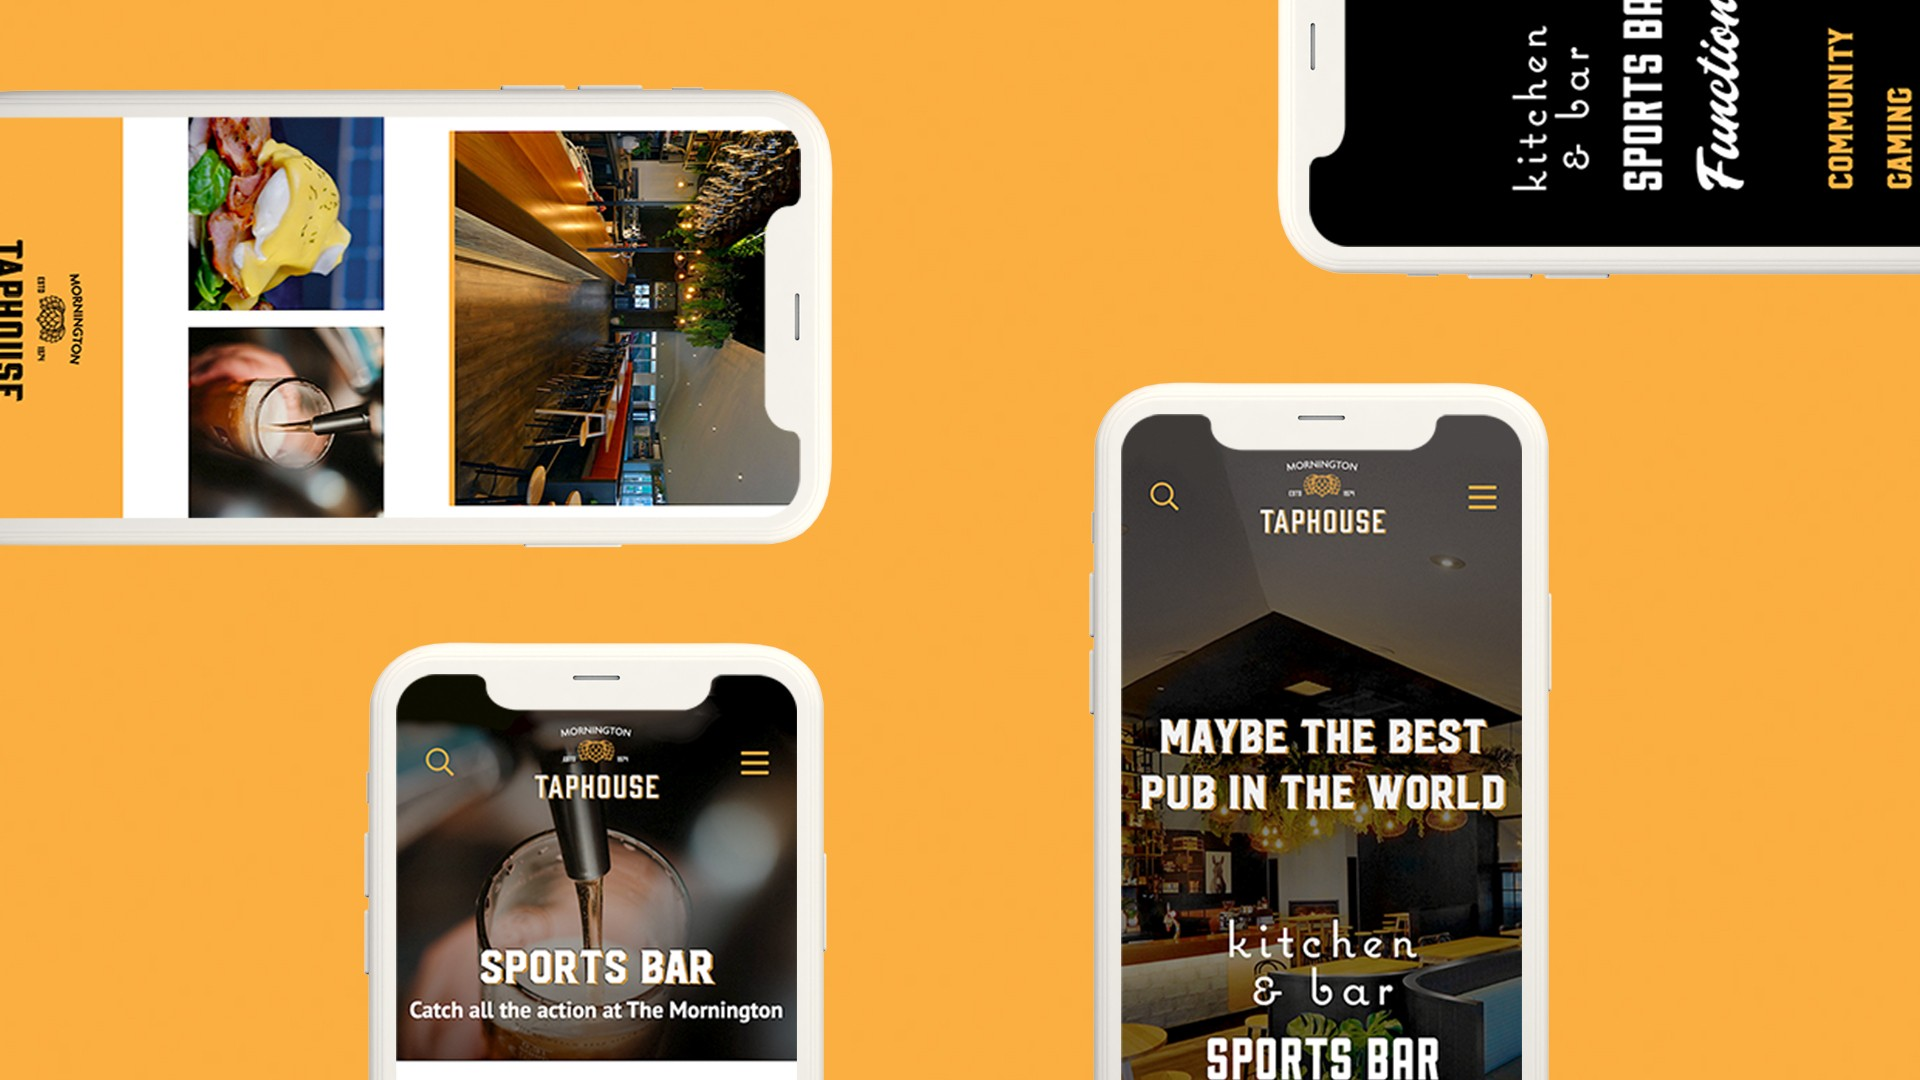 Mornington Taphouse website shown on mobile screens